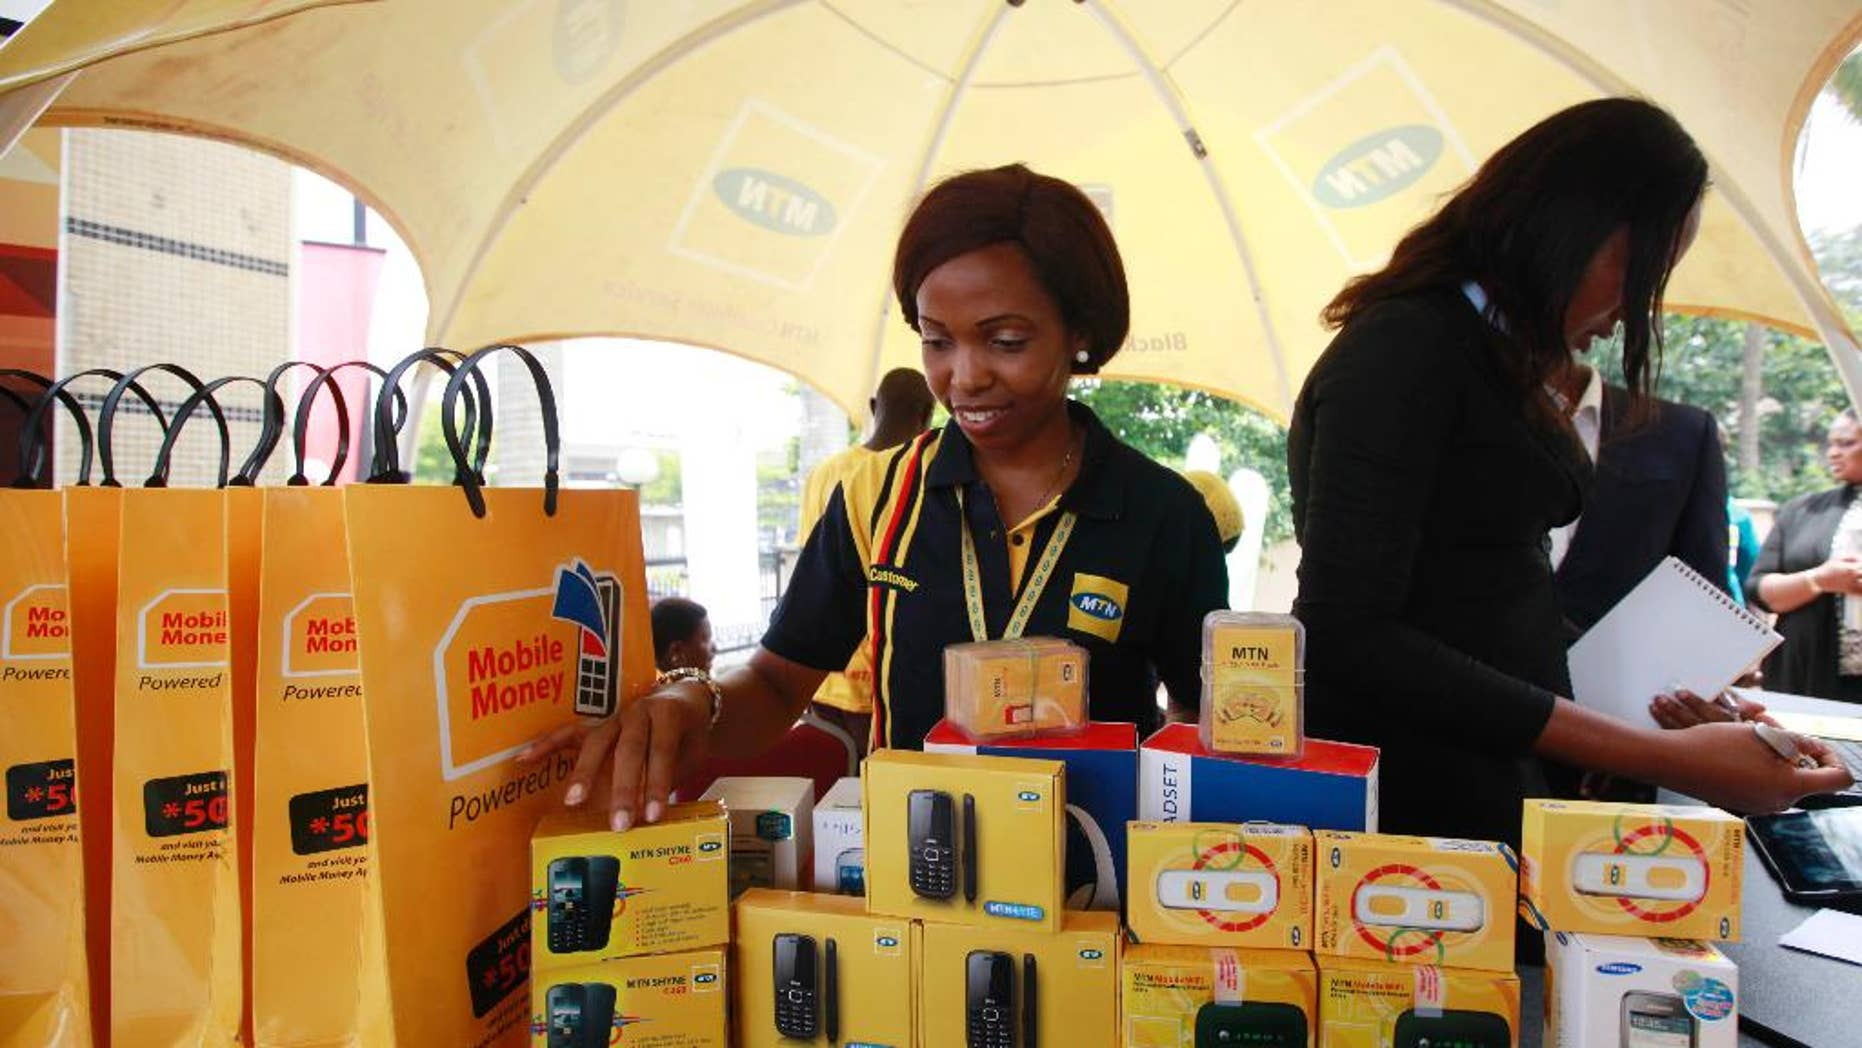 FILE- In this Monday April. 22, 2013 file photo, staff of MTN Nigeria workduring the launch of mobile number portability in Lagos, Nigeria. MTN Group telecommunication's stock plunged 12.5 percent on the Johannesburg Stock Exchange Monday, Oct. 26, 2015 on the news that its most lucrative subsidiary, in Nigeria, has been fined $5.2 billion for failing to disconnect millions of unregistered cellphone subscribers.The Nigerian Communications Commission confirmed the penalty based on 200,000 naira ($1,000) for each of 5.1 million cellphone SIM cards that had not been registered and should have been disconnected by an August deadline.  (AP Photo/Sunday Alamba file)